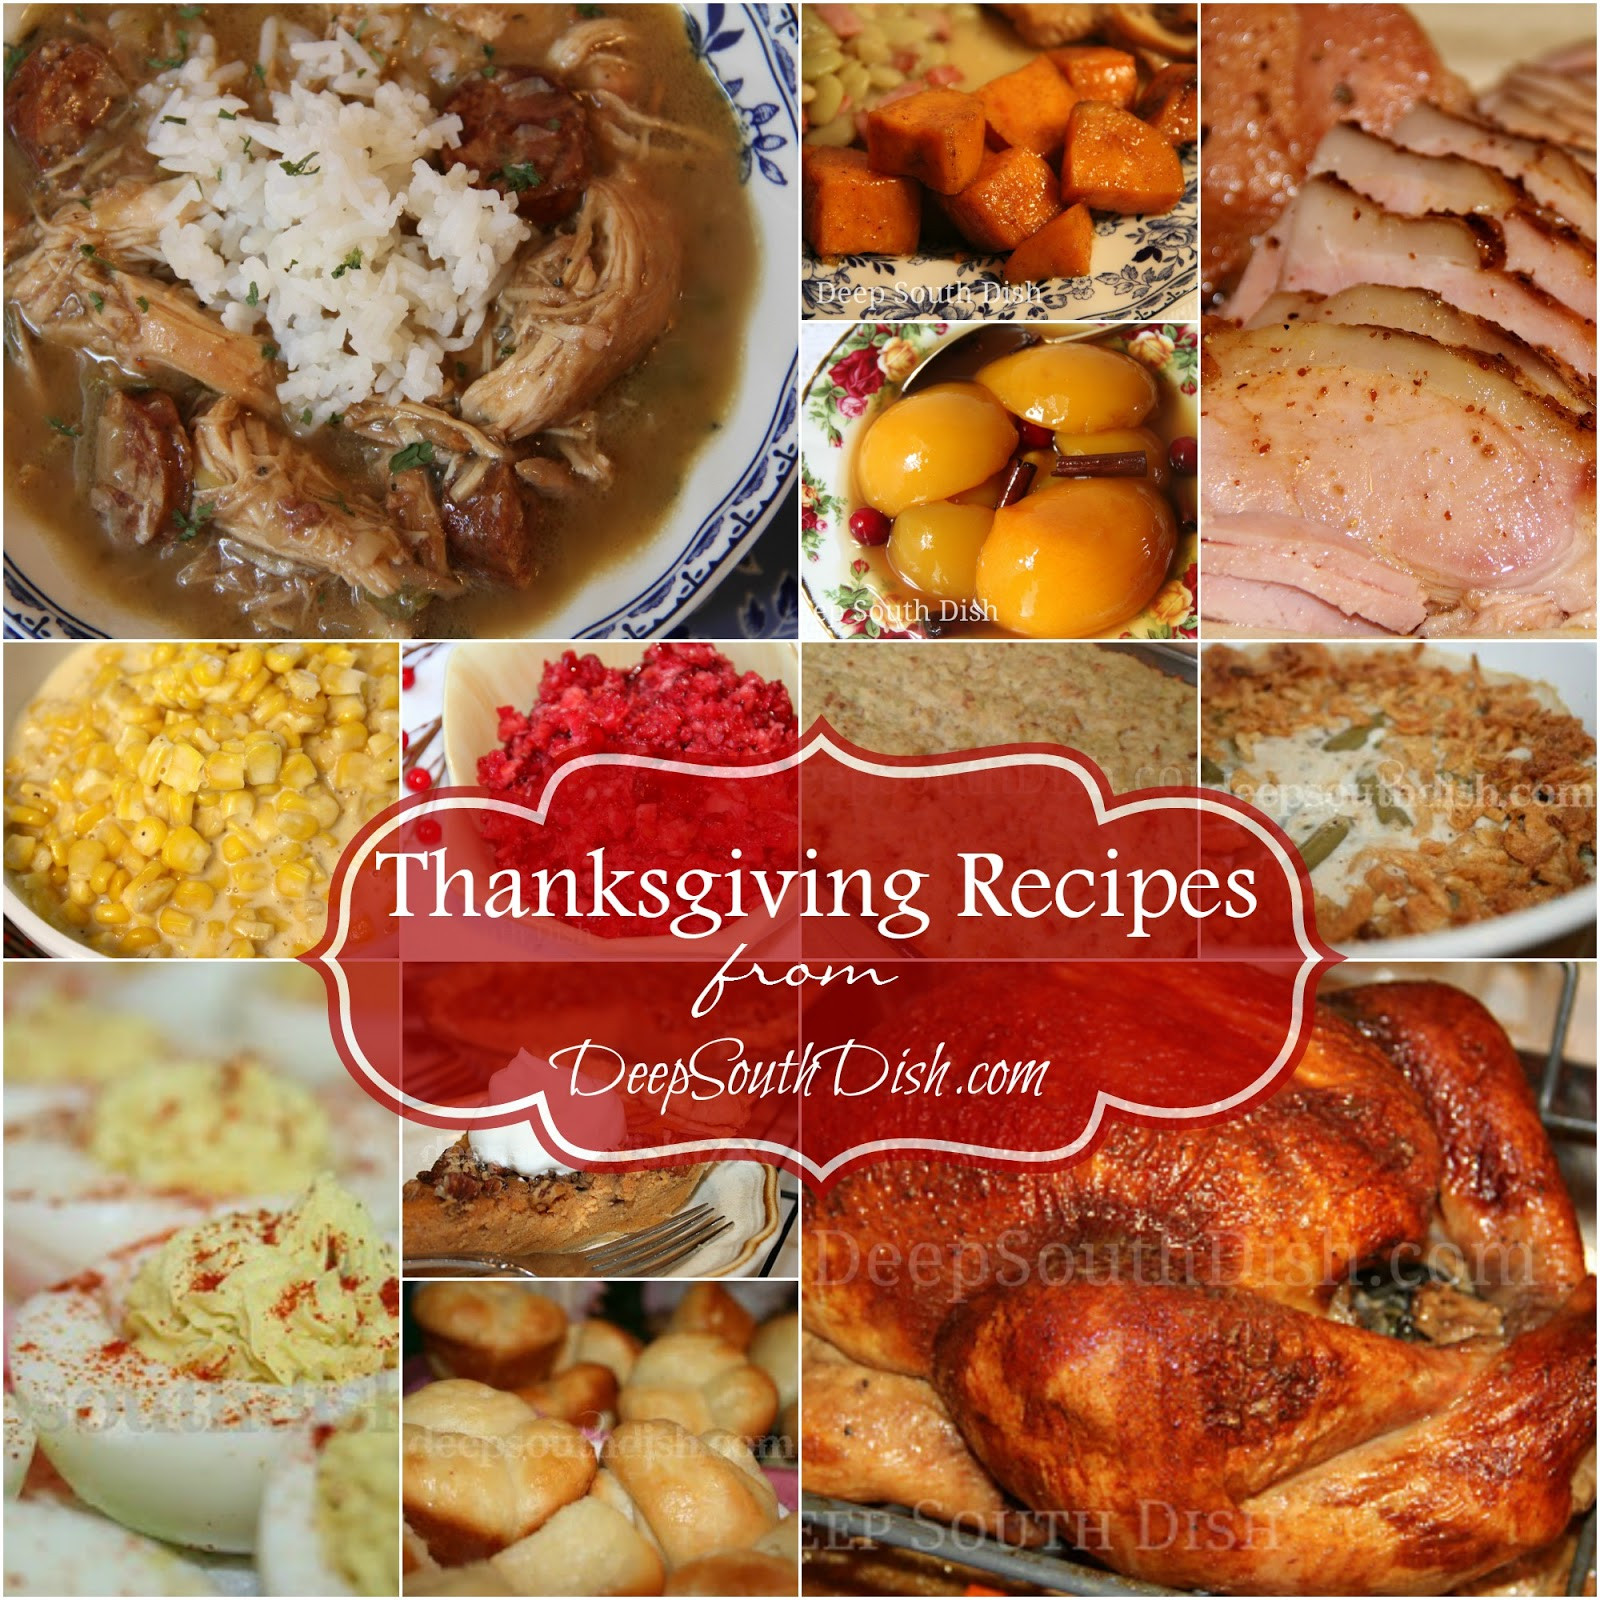 Traditional Southern Thanksgiving Dinner Menu  Deep South Dish Deep South Southern Thanksgiving Recipes